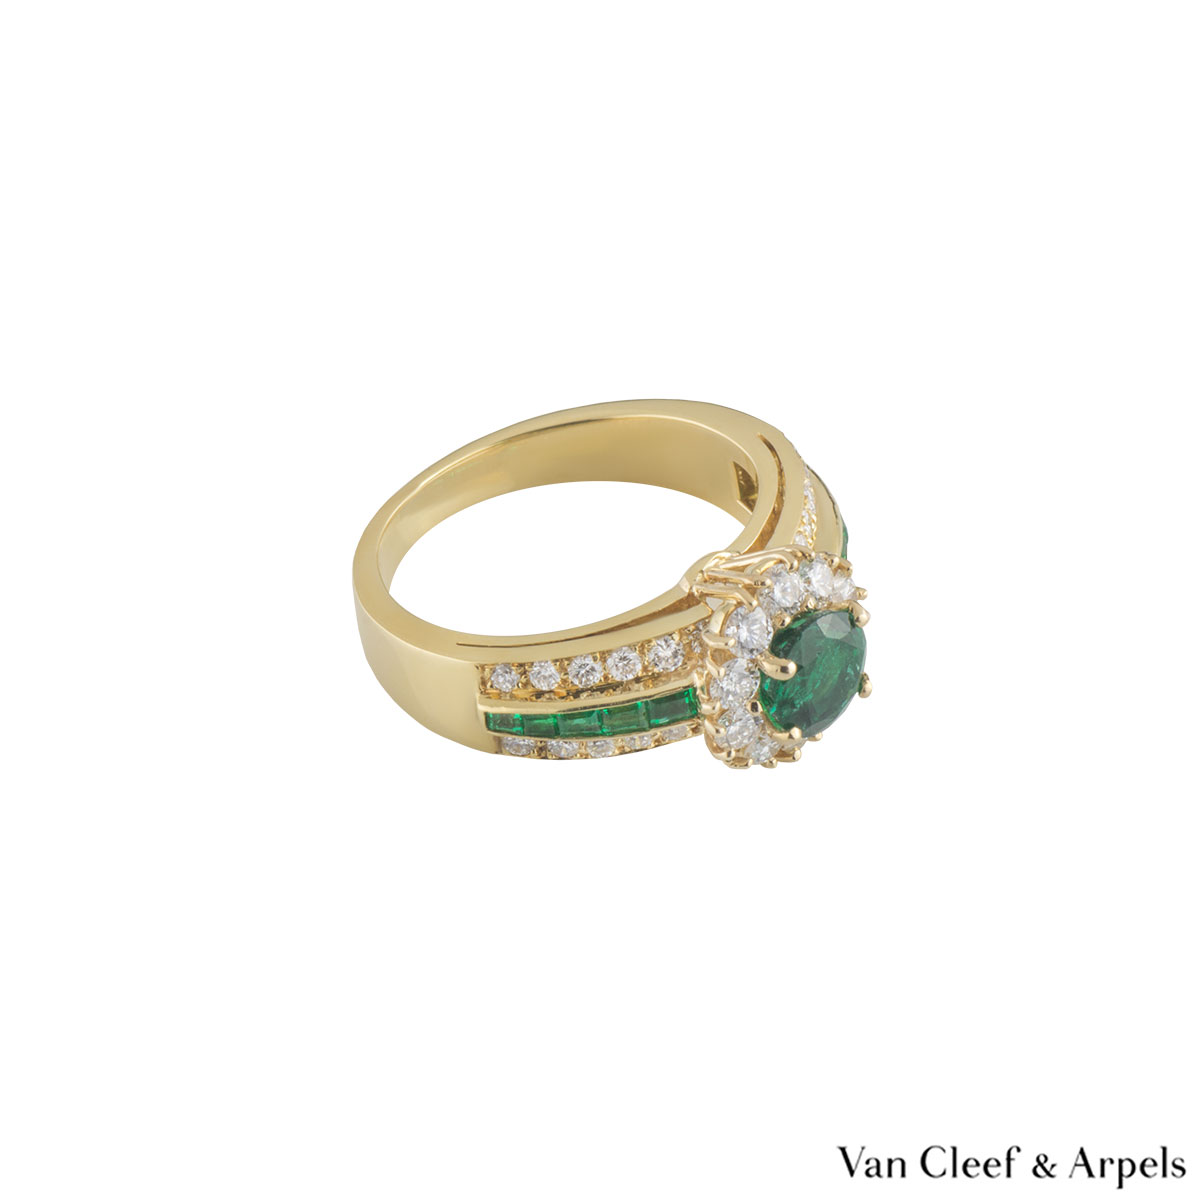 Van Cleef & Arpels Yellow Gold Emerald and Diamond Ring